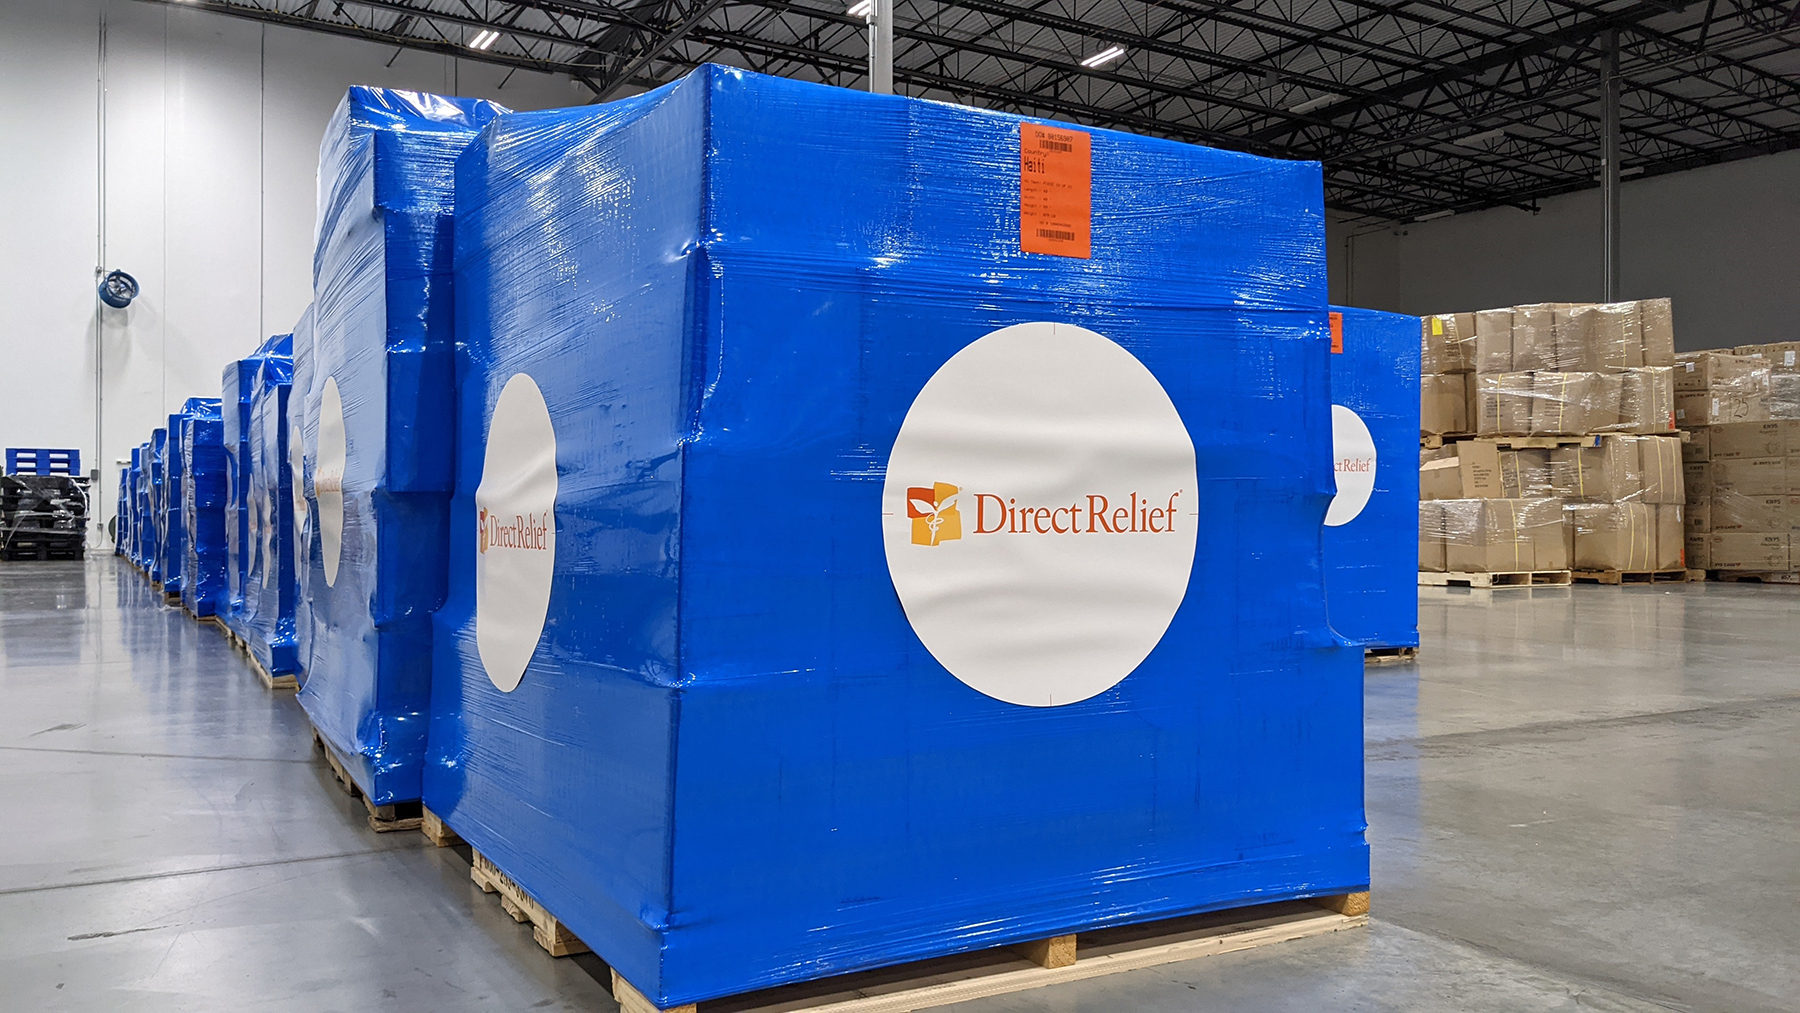 Medical aid for Haiti is staged in Direct Relief's California distribution center, in preparation for a chartered flight to the country. (Direct Relief photo)